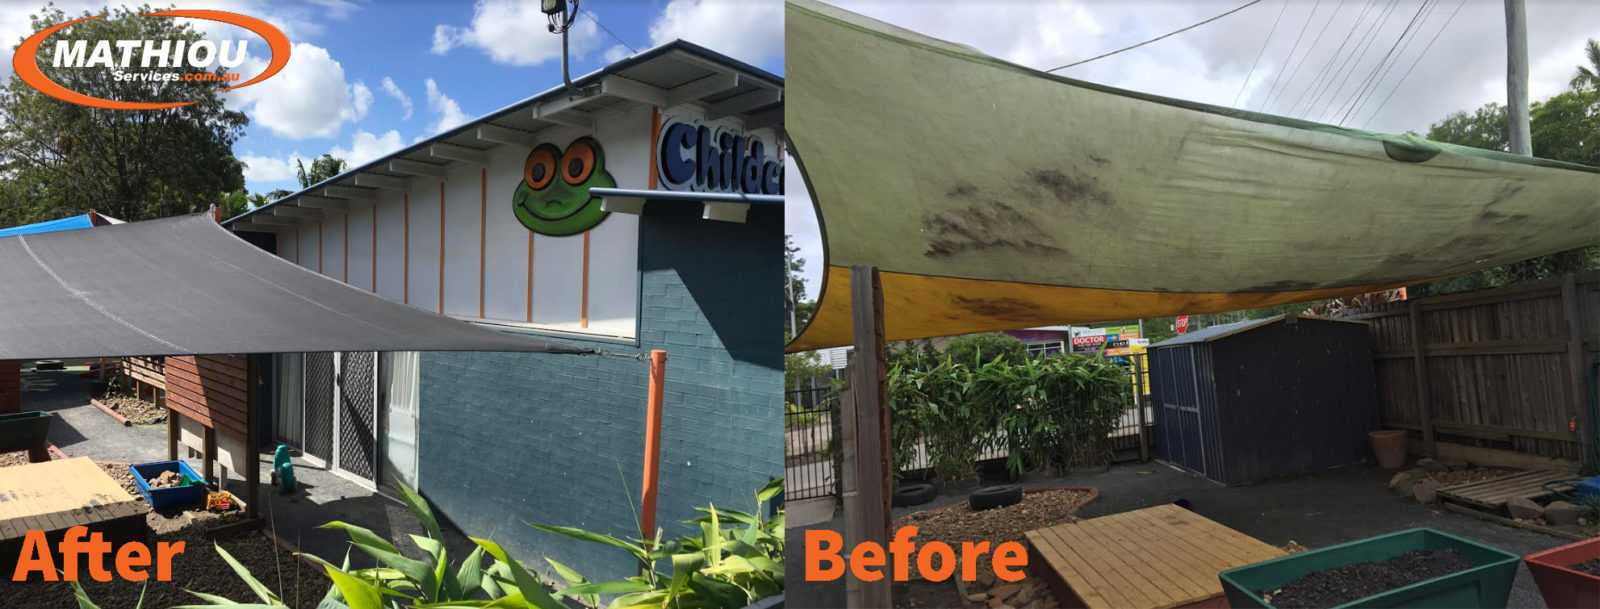 Burnsid shed and painting Before and After